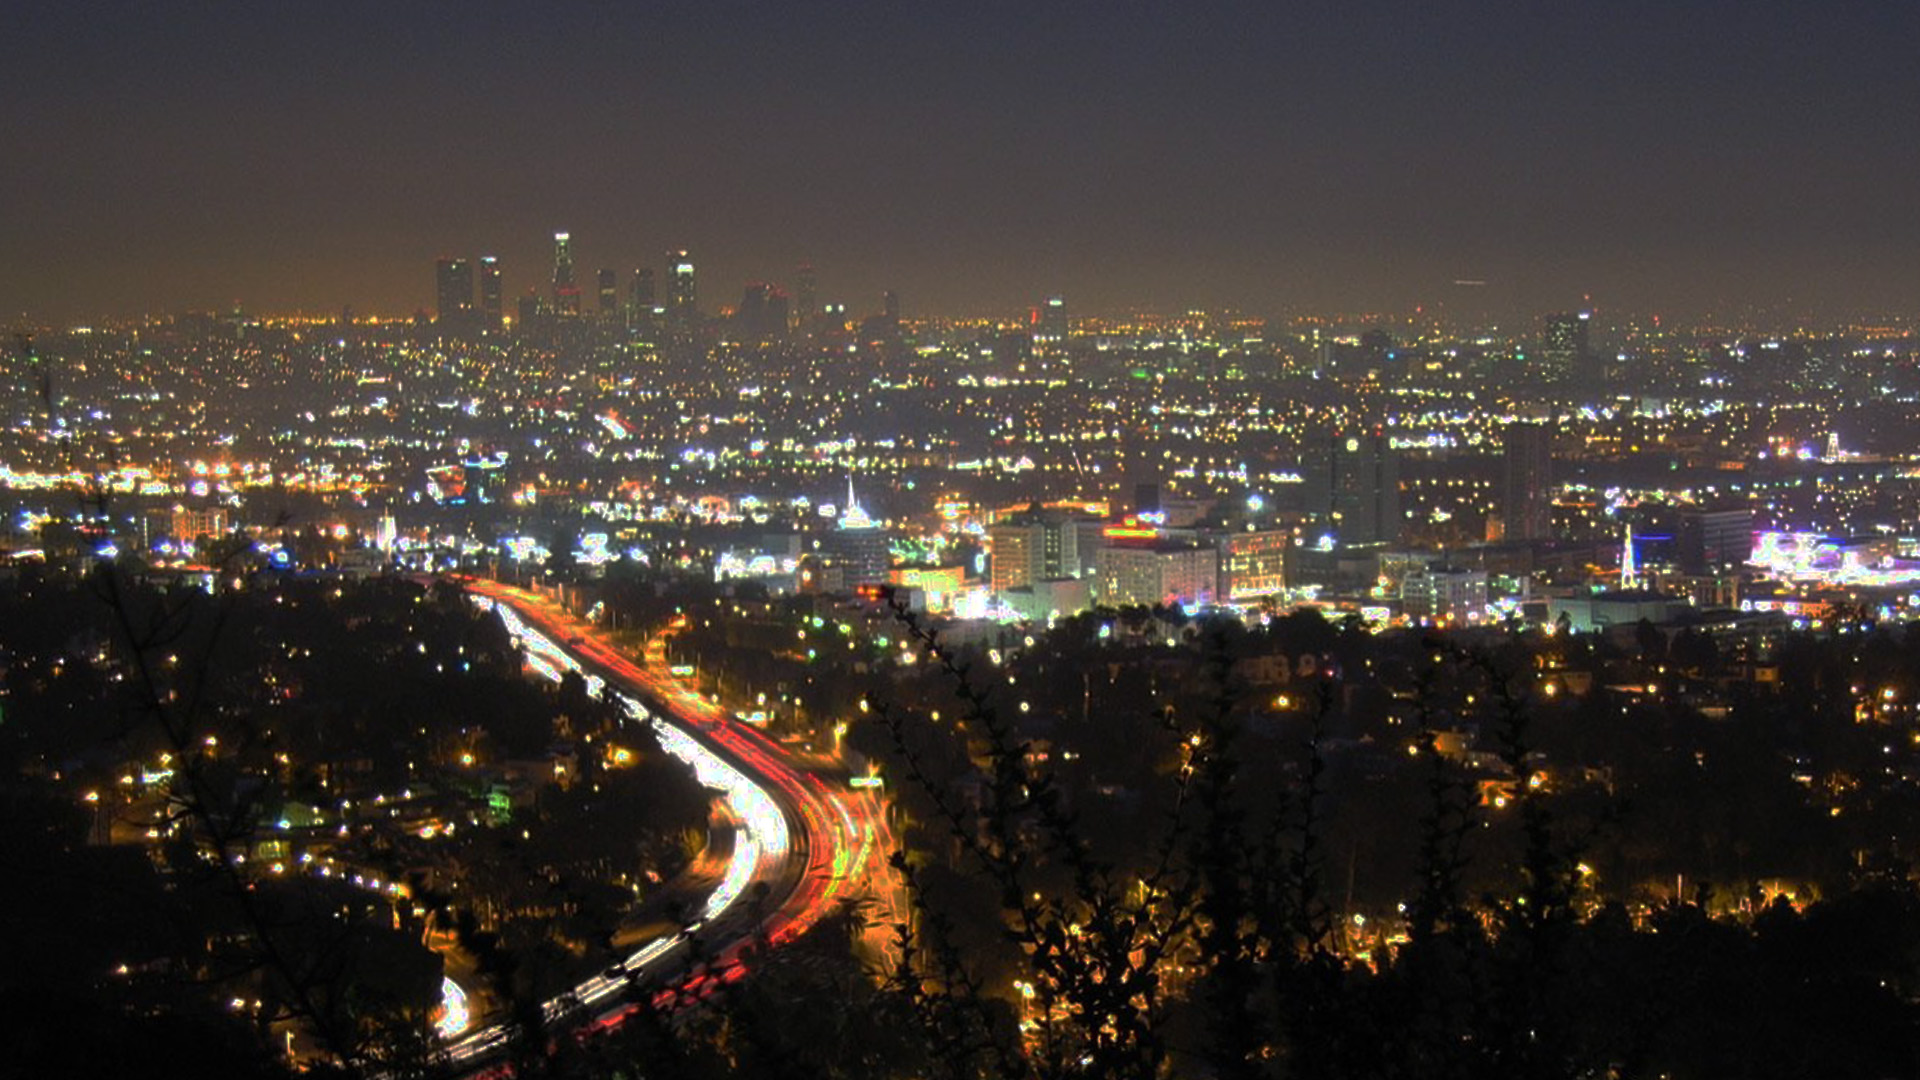 Driving at night in Los Angeles County presents many challenges. Traffic can be lighter, but that leads to many drivers who exceed safe speeds. Take your time, be well rested, and plan your route ahead to avoid being involved in a car accident.